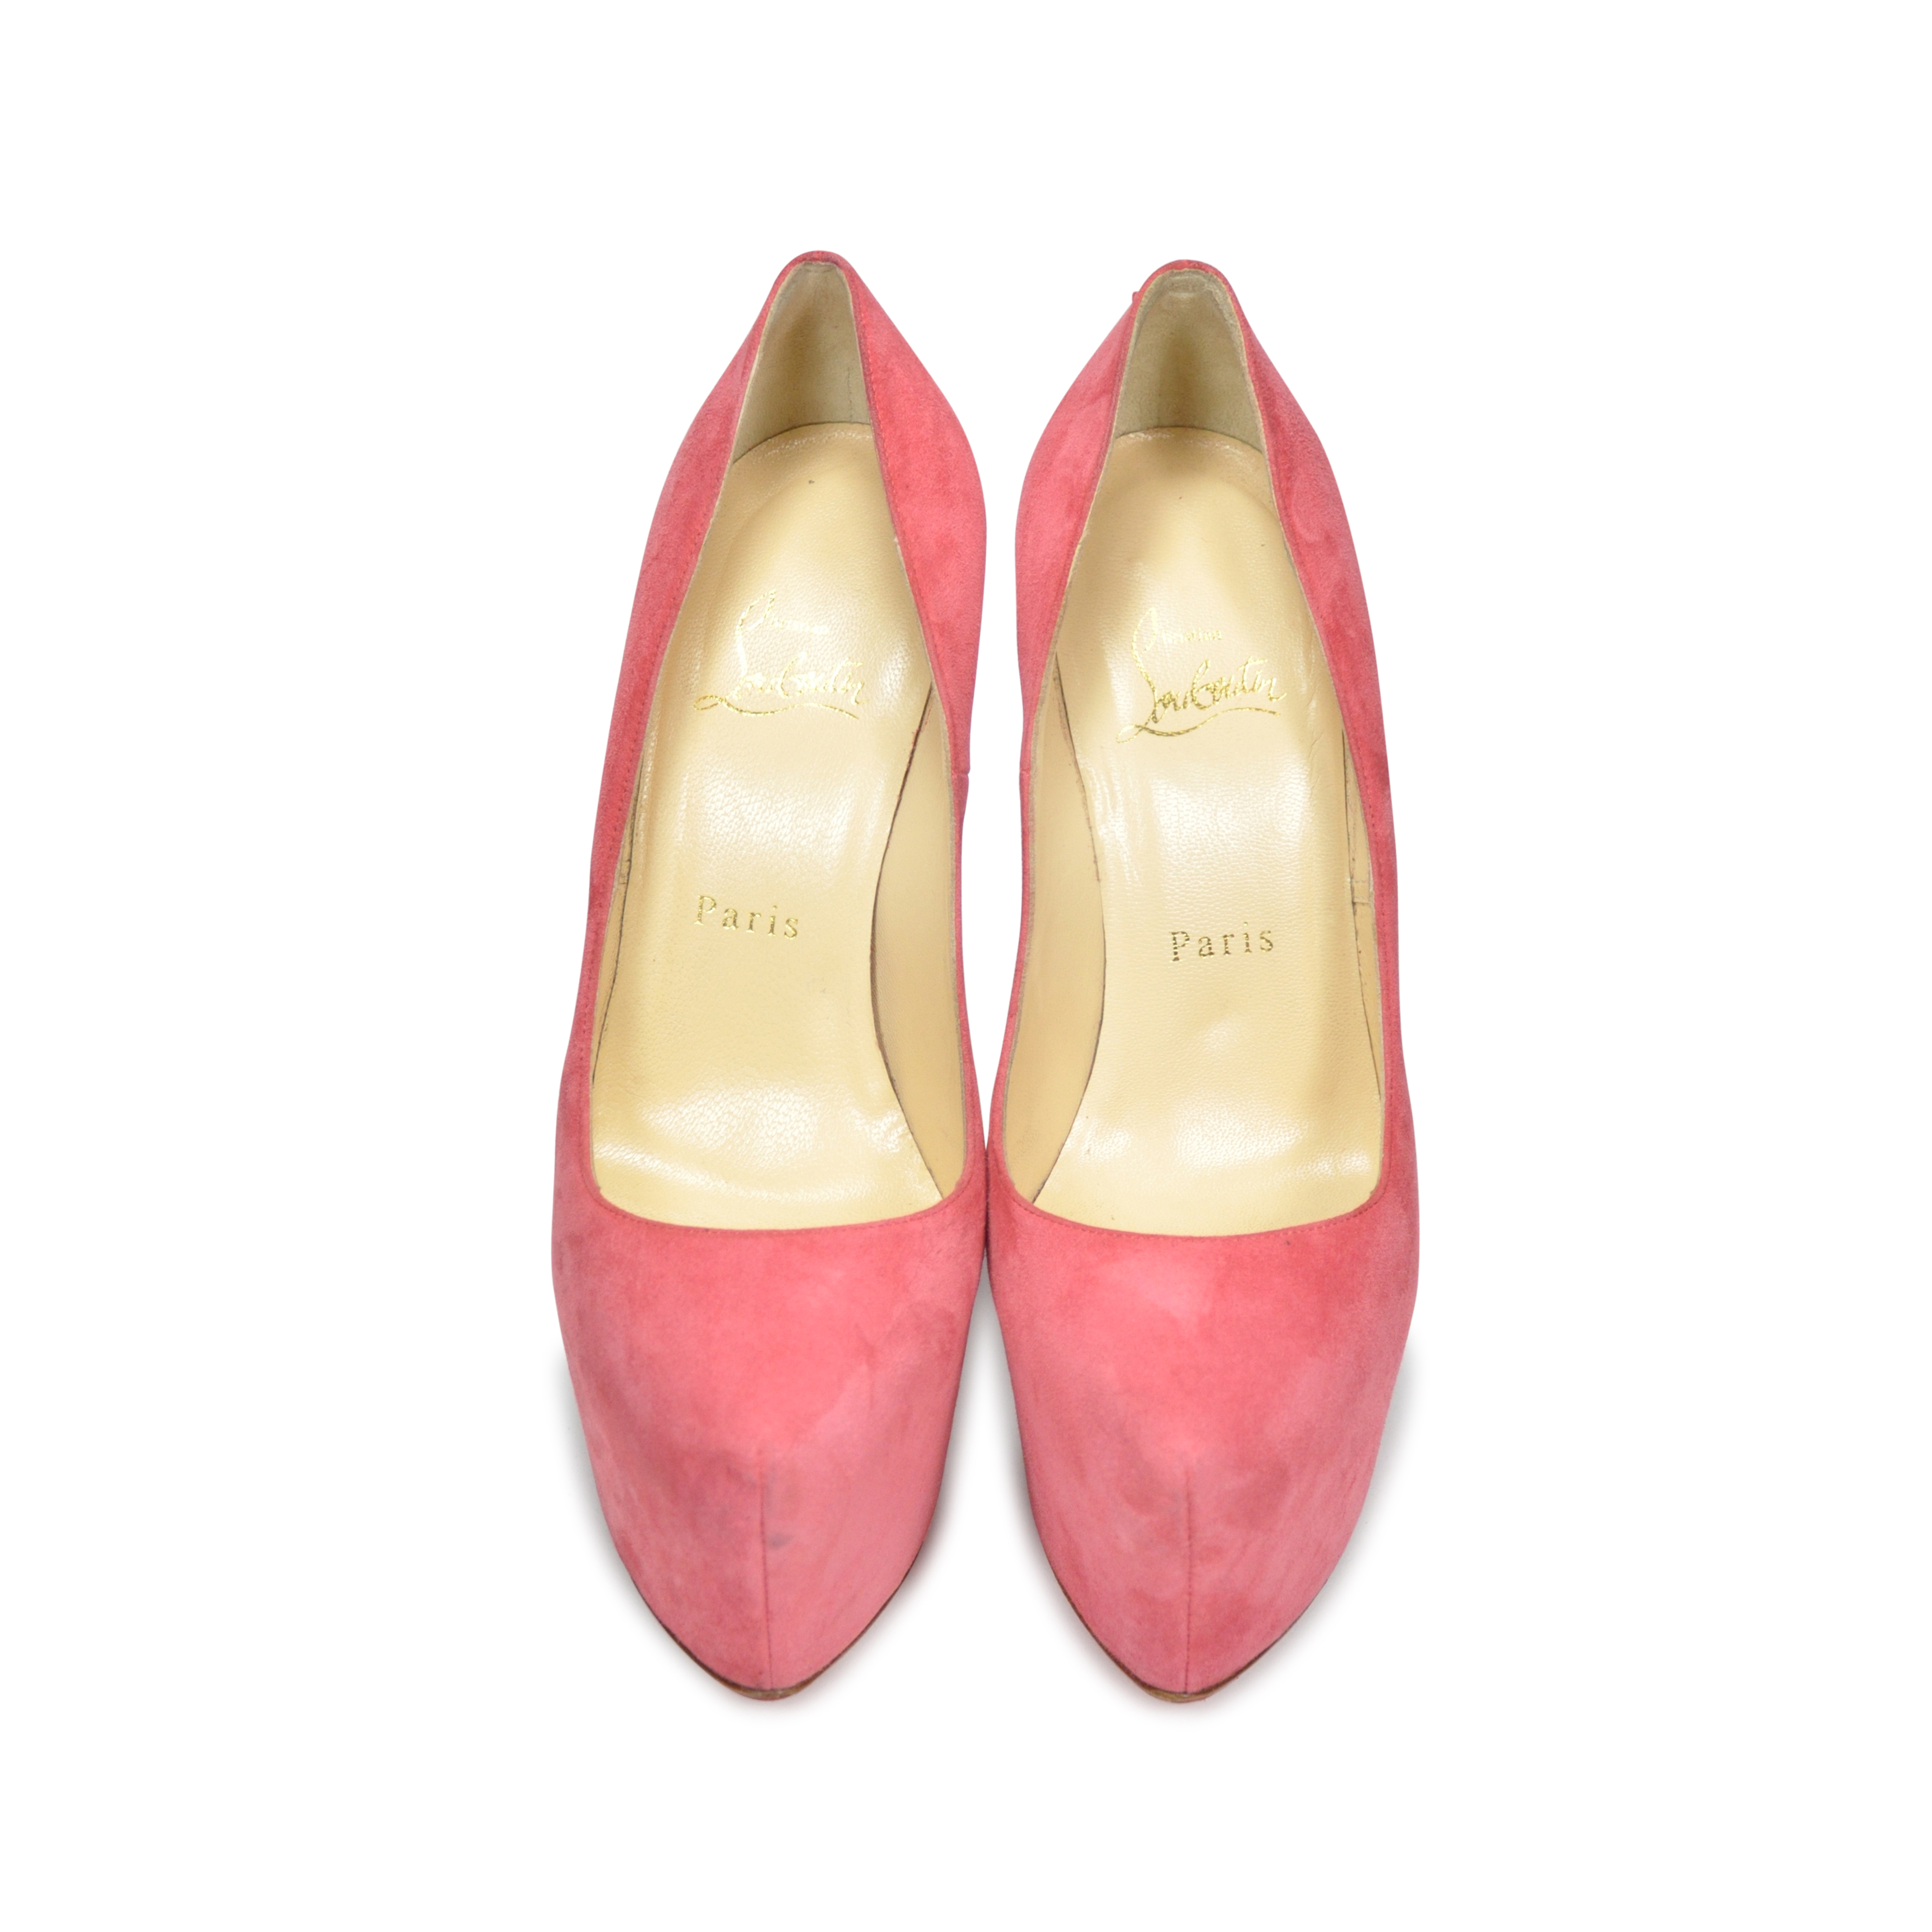 926bc3f56f9d Authentic Second Hand Christian Louboutin Suede Daffodile Pumps (PSS-197- 00006)